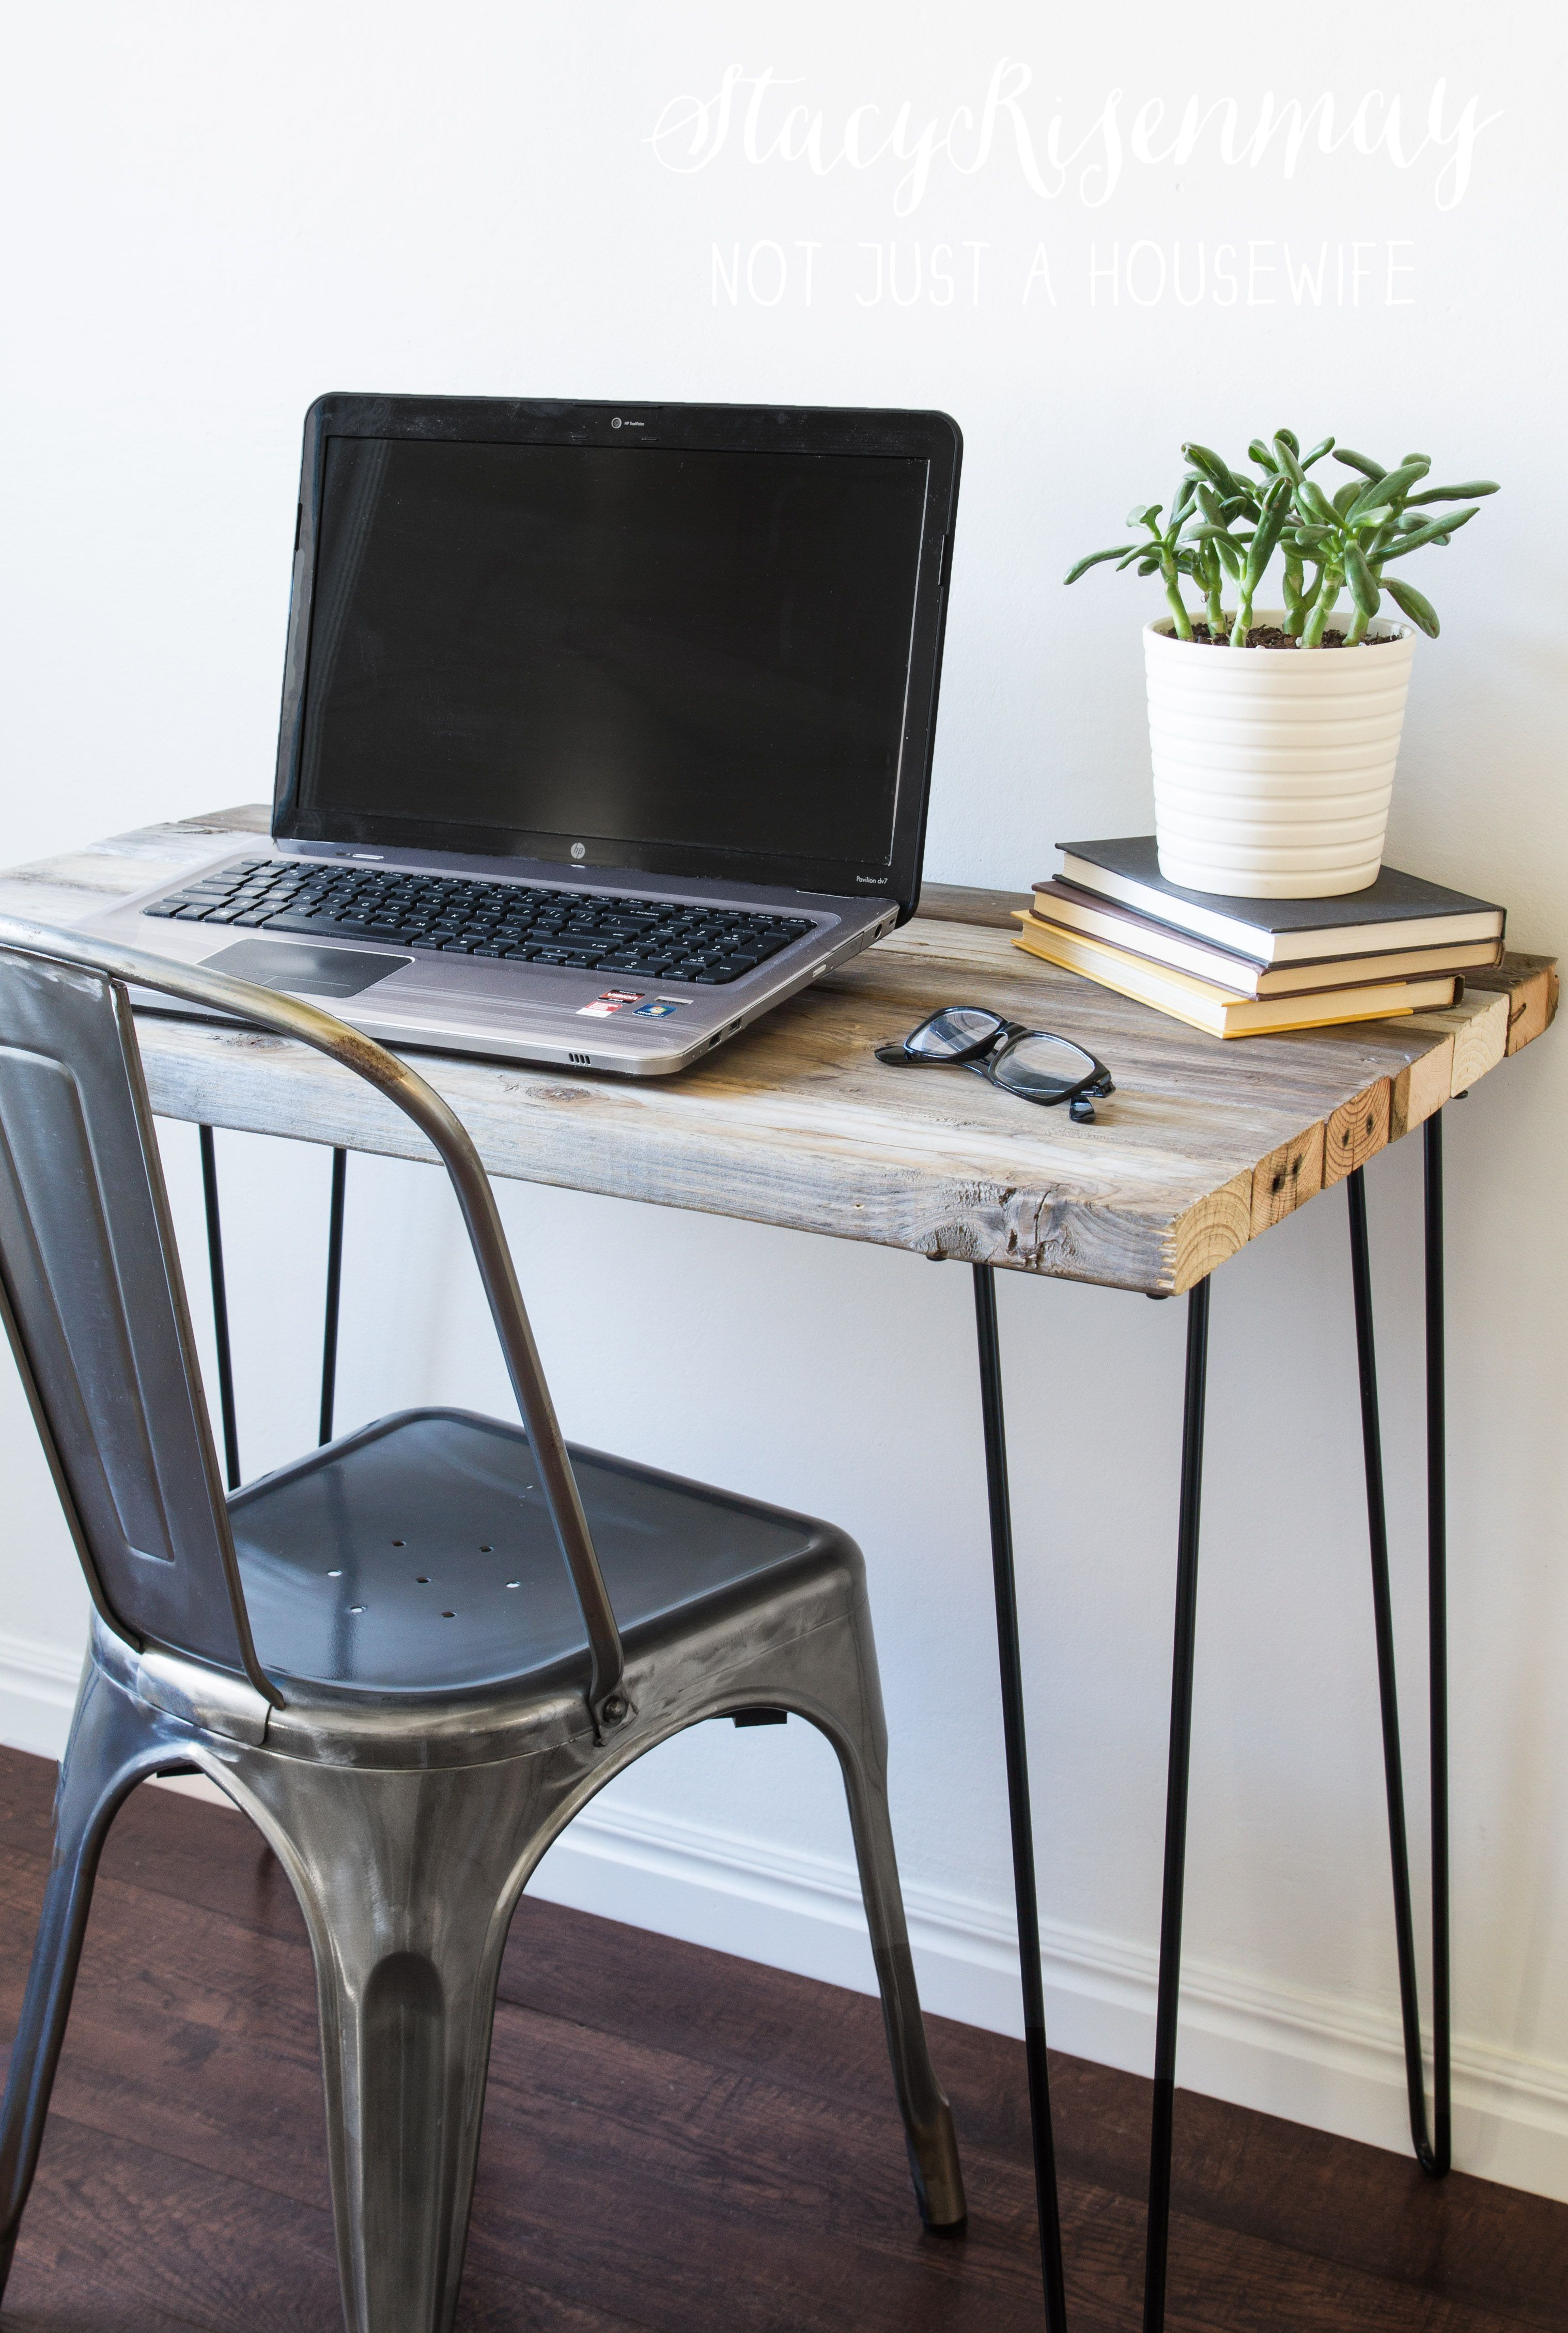 custom room wood salvaged ideas related reclaimed desk interesting industrial office categories made inspirations glamorous